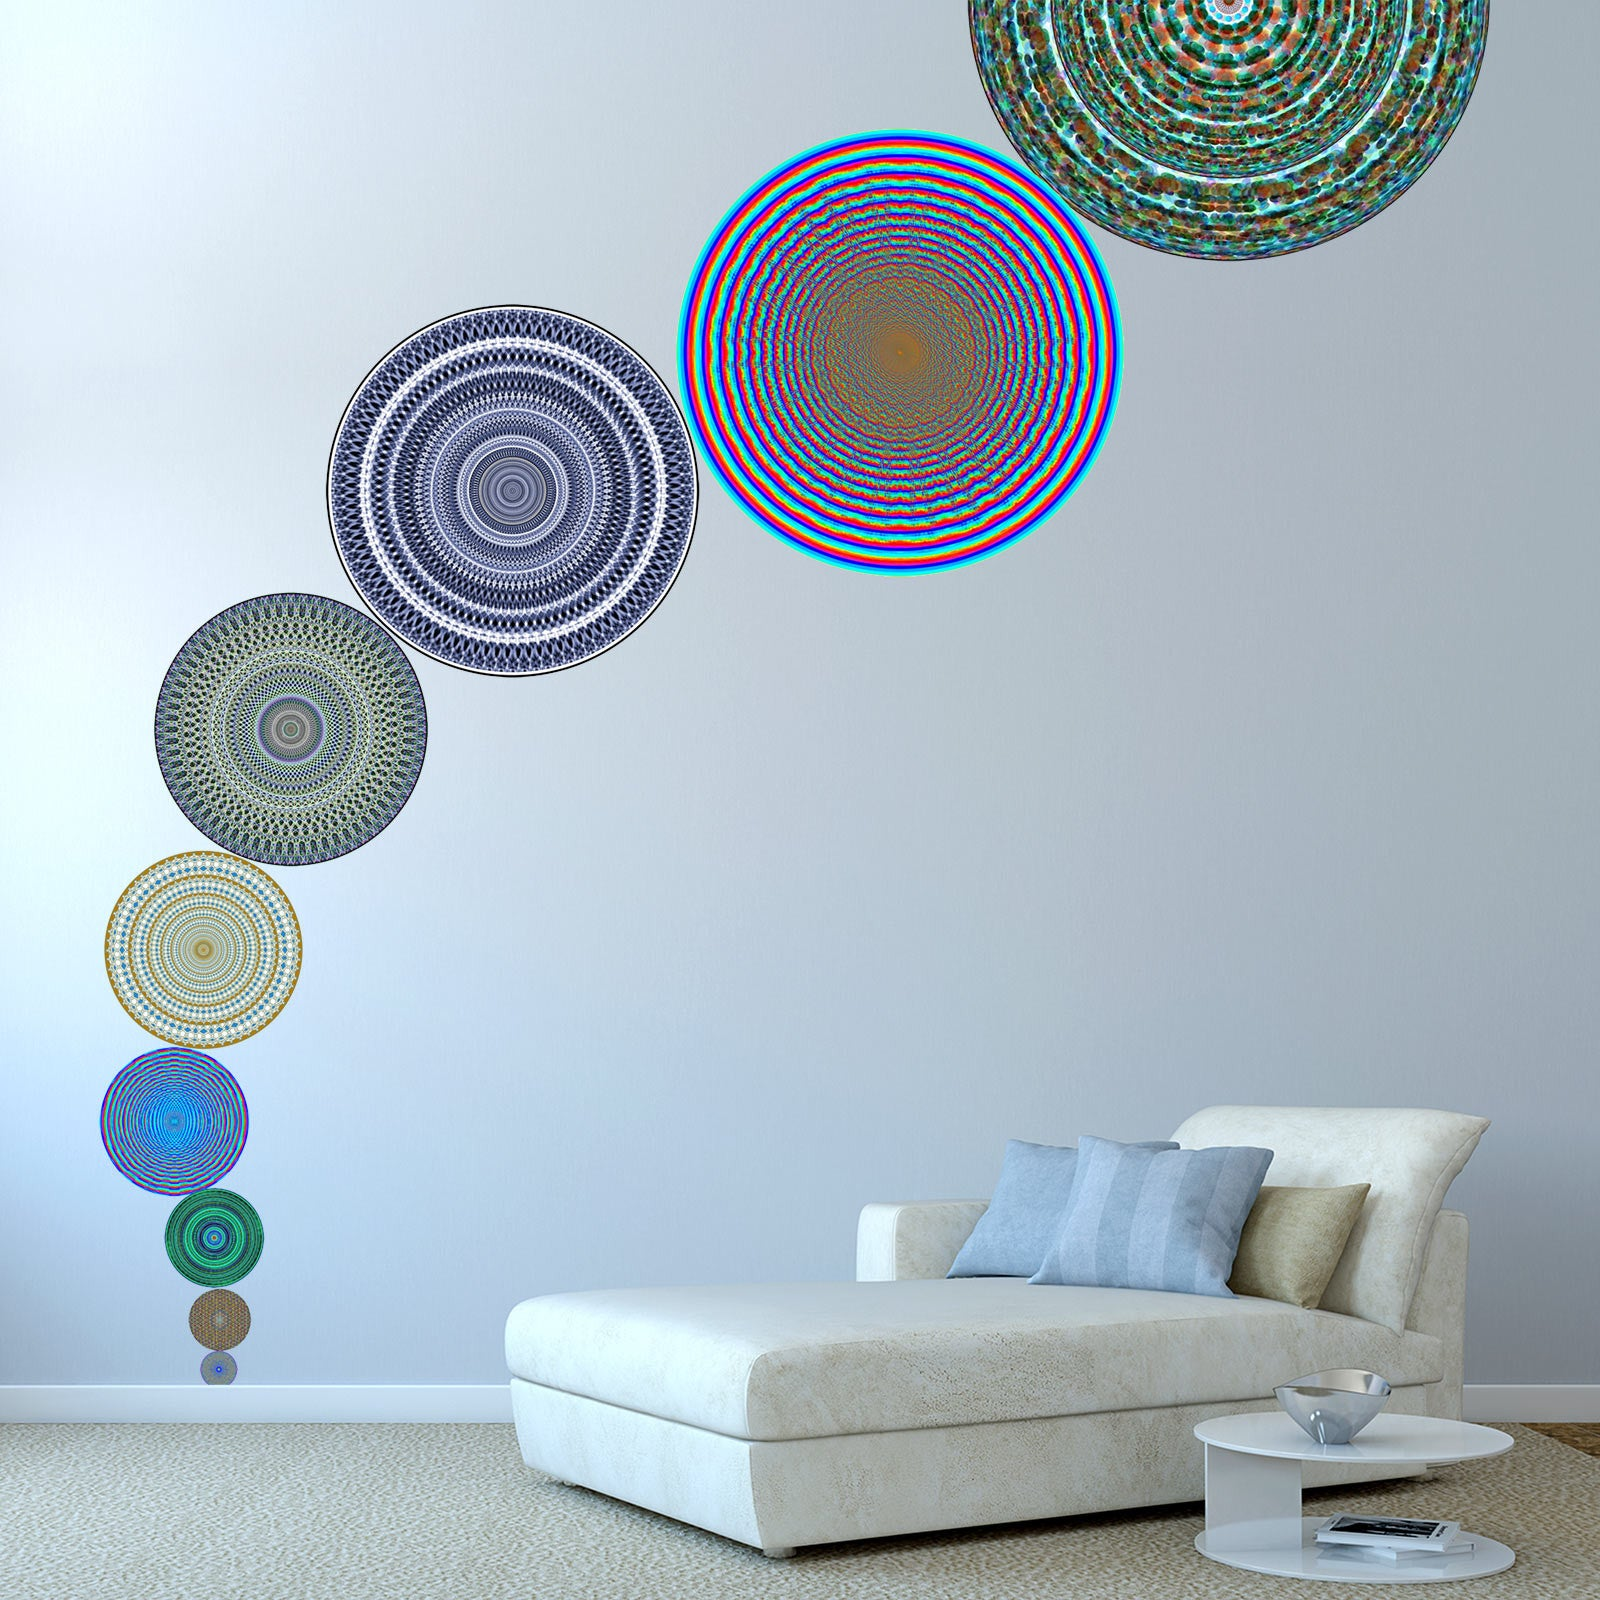 Wall Sticker Sets and Murals - Conspicuous Design